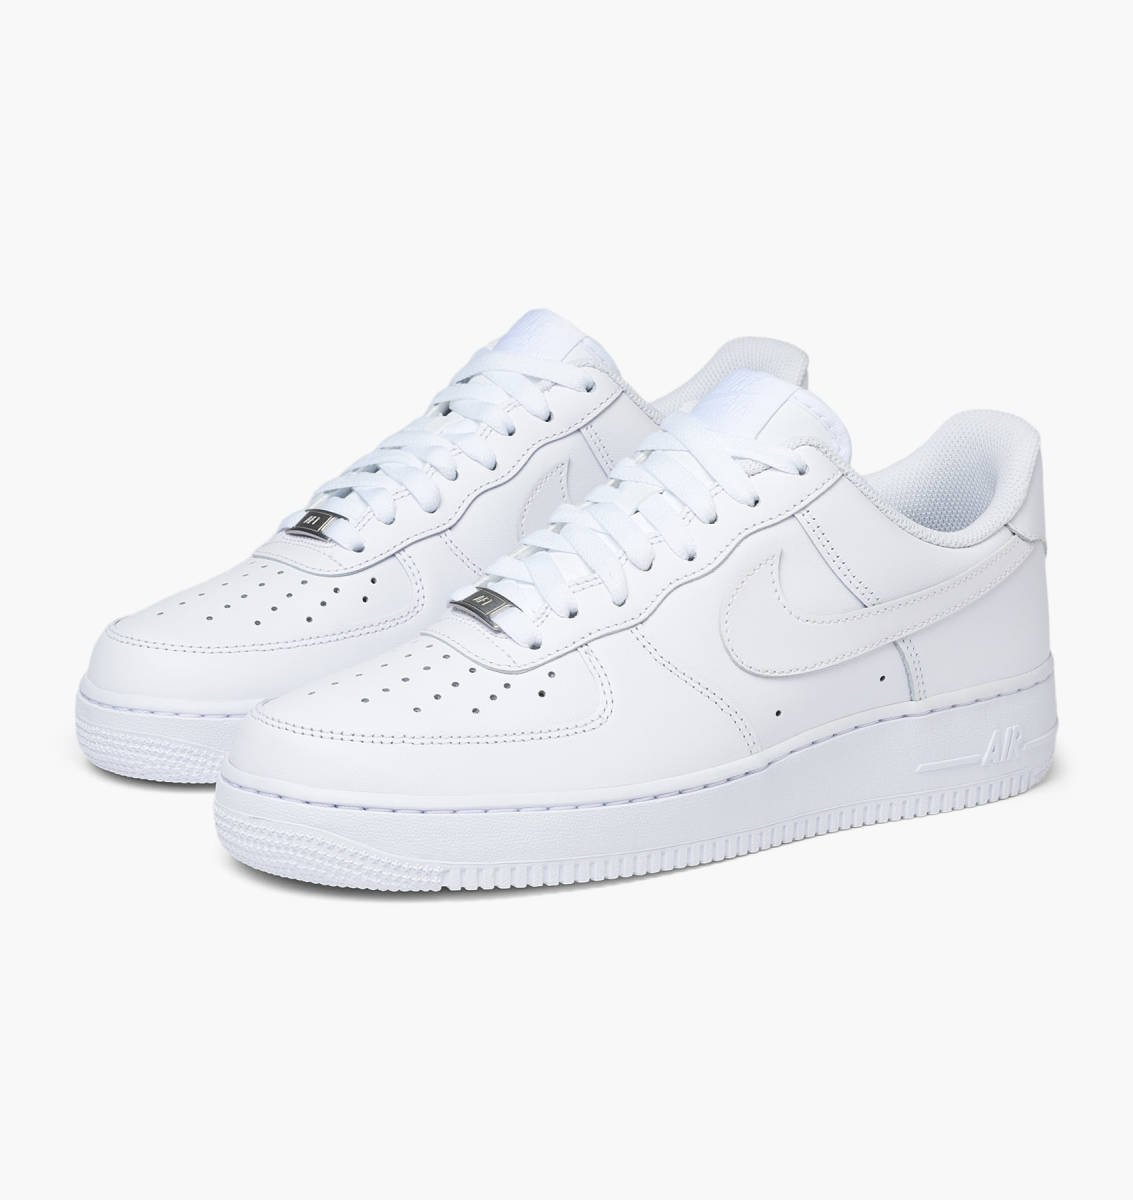 Nike Air Force 1 07 in weiss 315122 111 | everysize